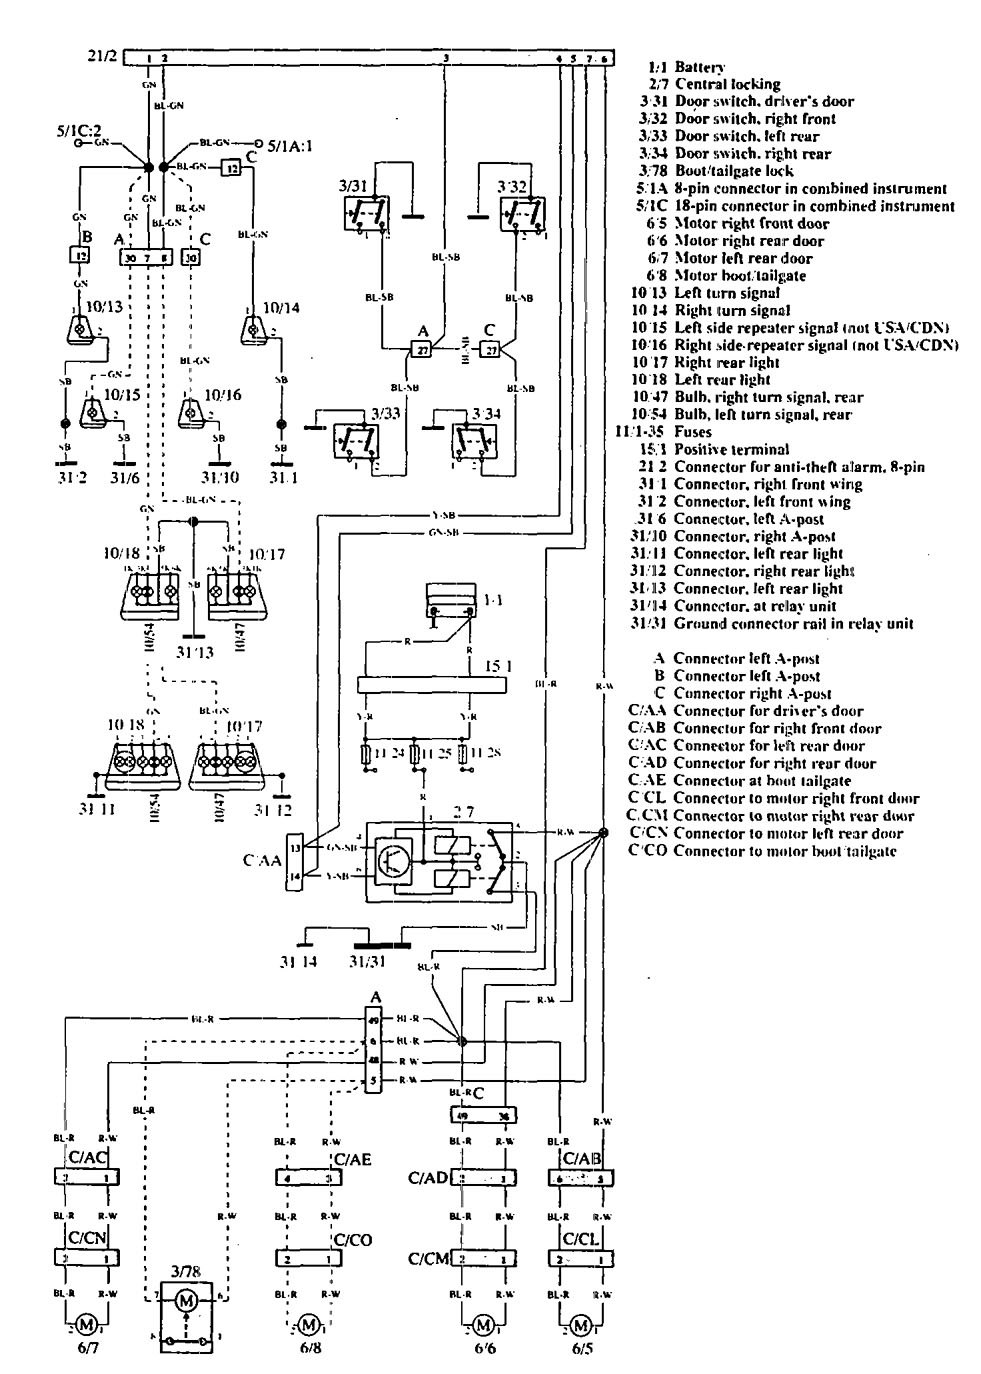 1993 Volvo 240 Radio Wiring Diagram : Volvo wiring diagram images